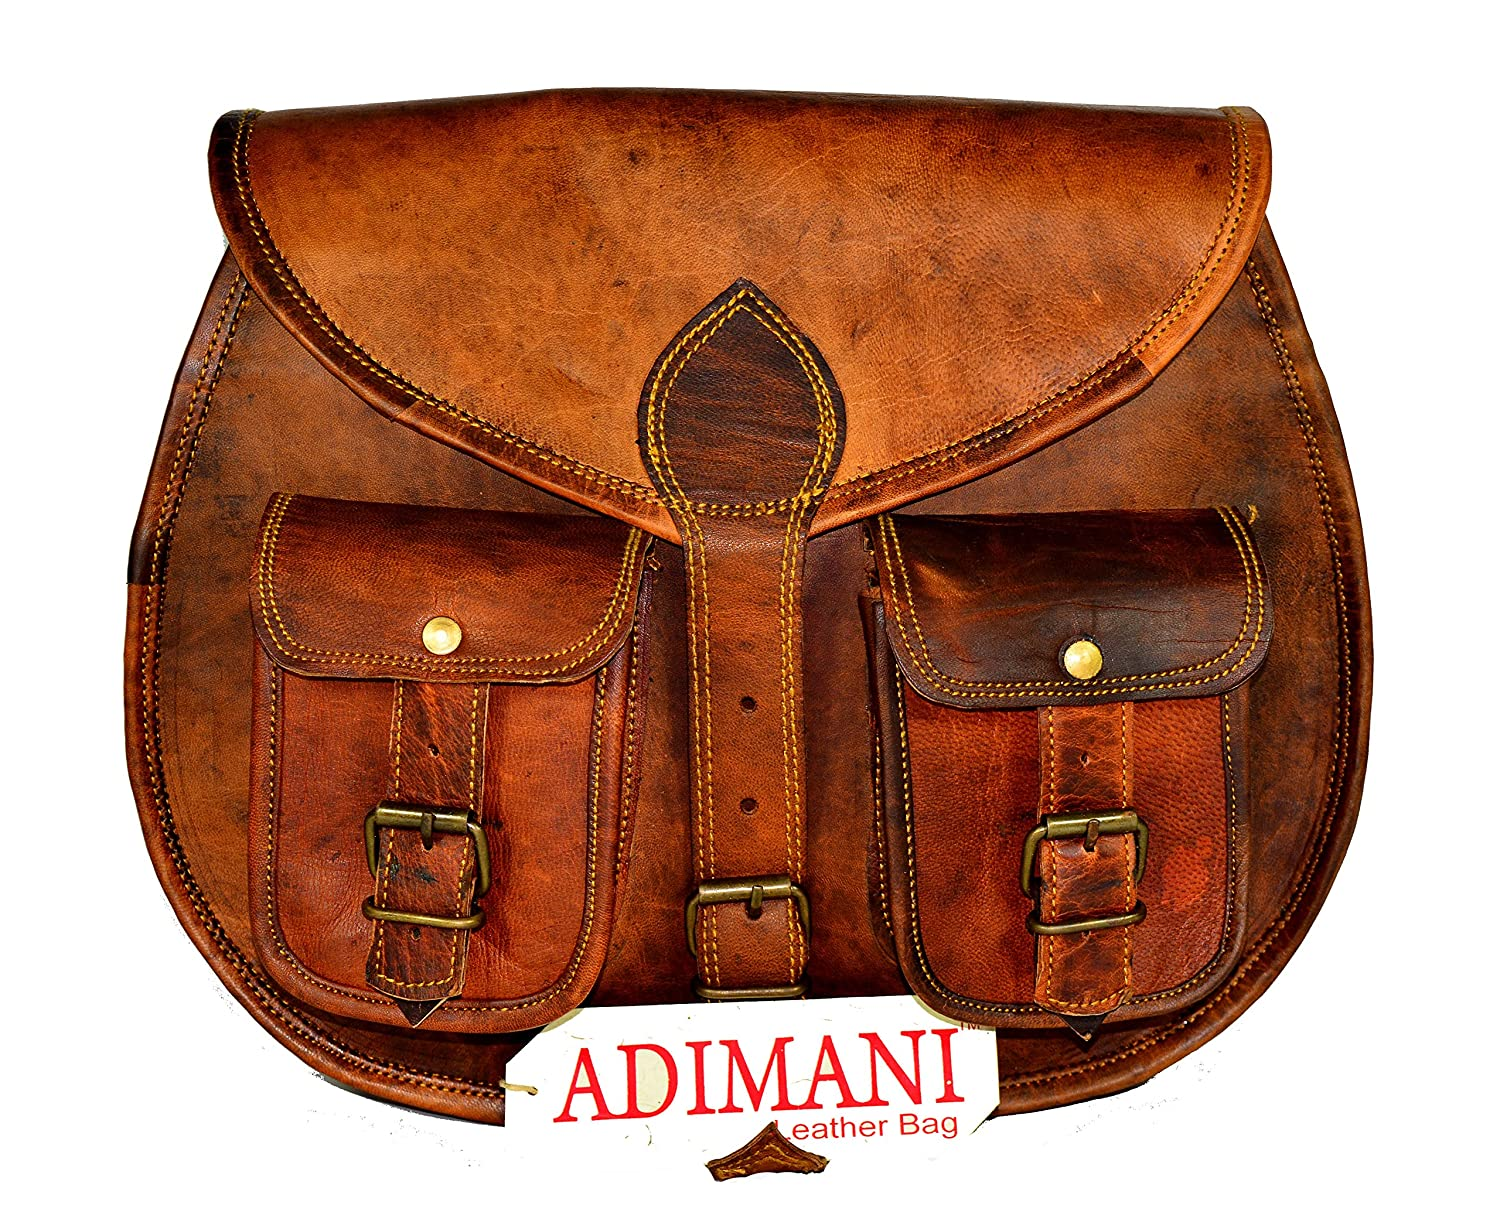 Adimani Vintage Handmade Leather Women Satchel Shoulder CrossBody Bag with Size13'' inches